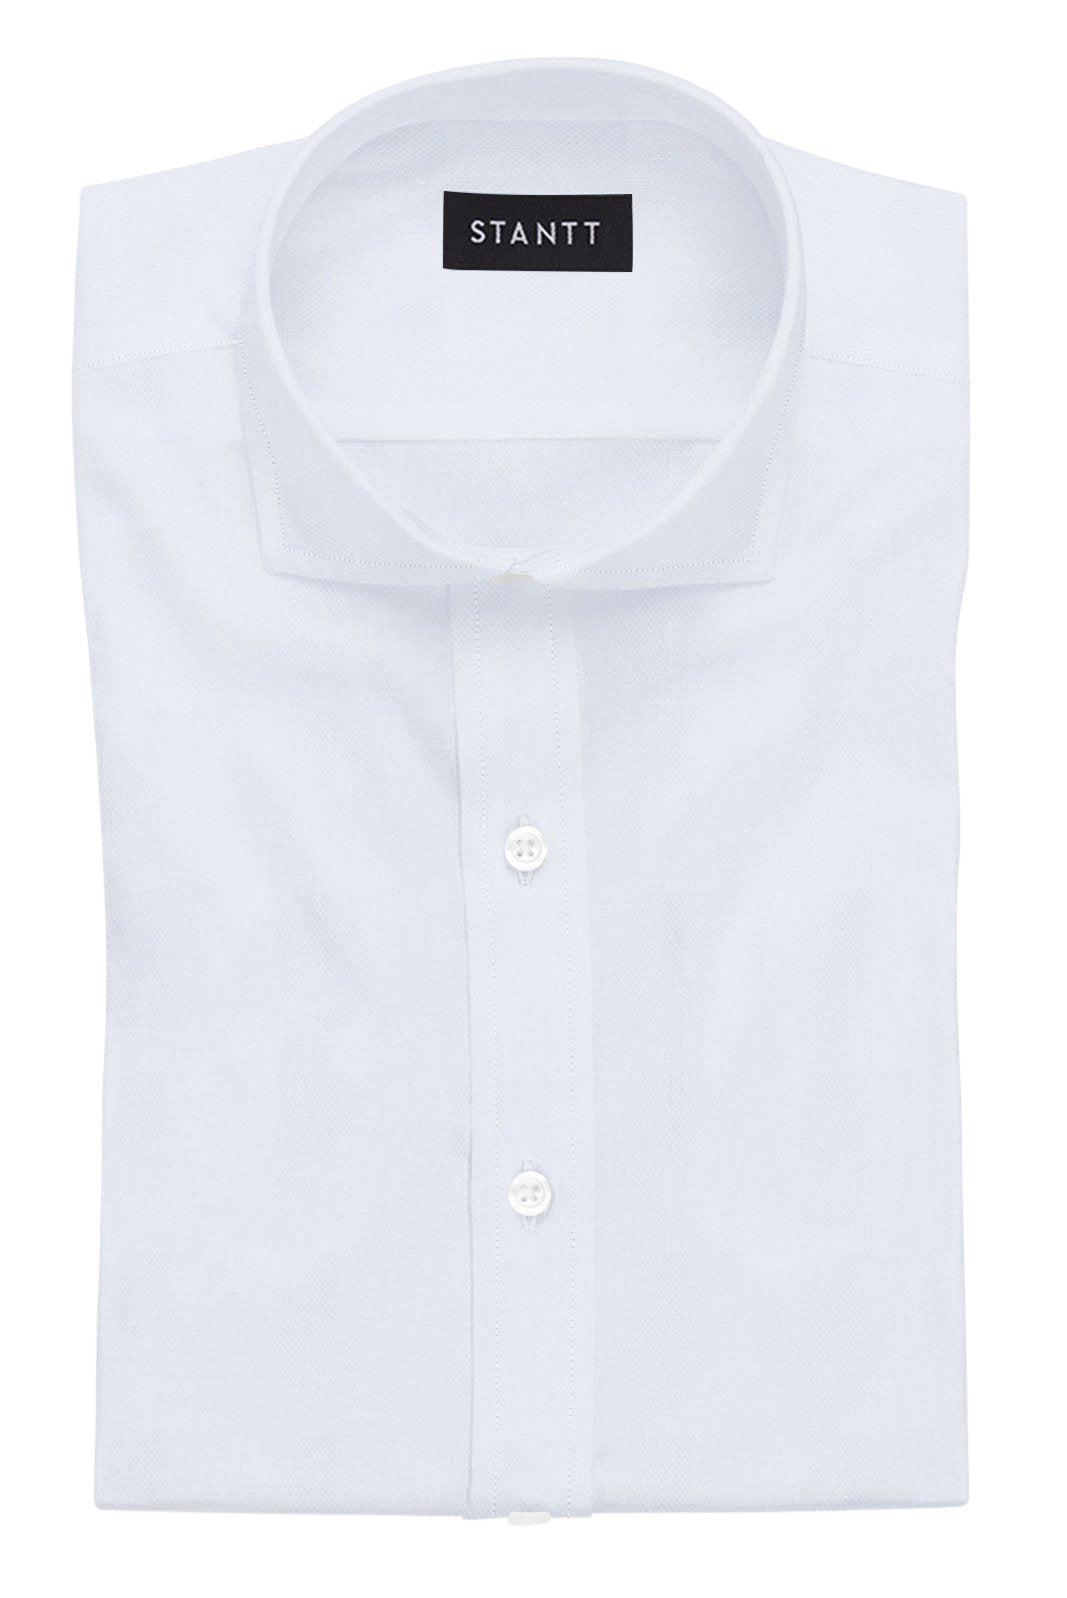 White Royal Oxford: Cutaway Collar, French Cuff